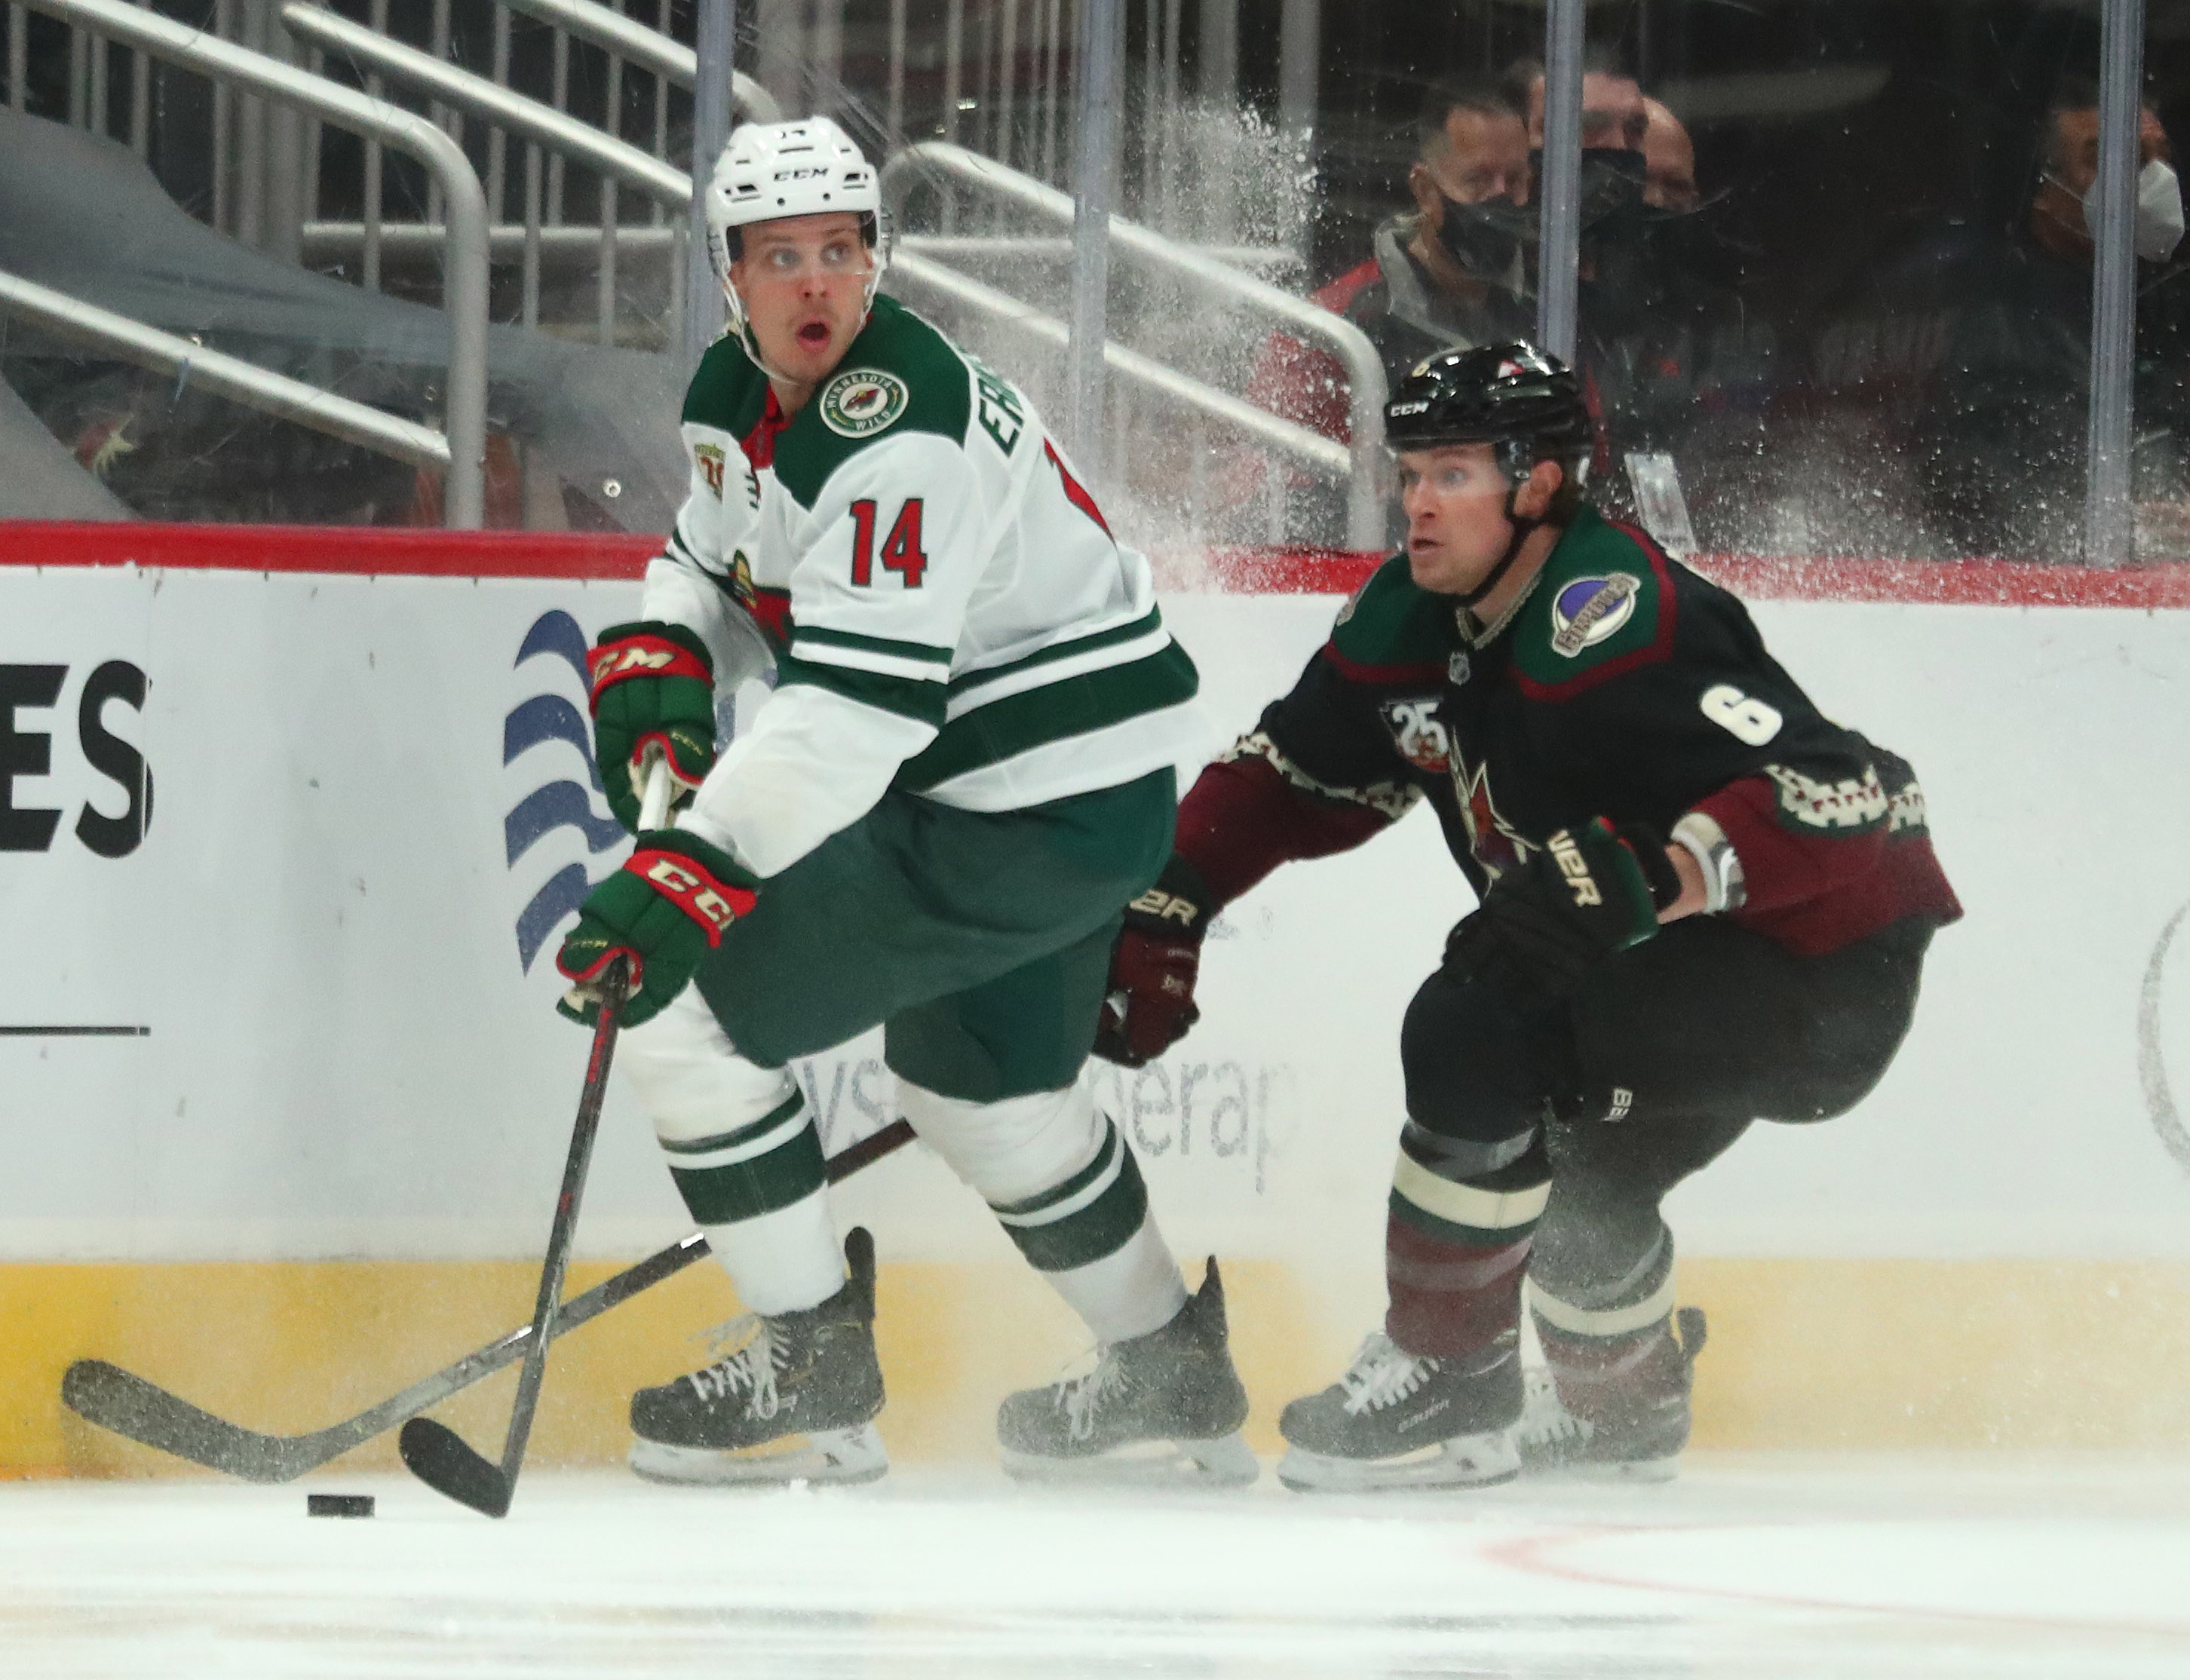 Game Preview: Minnesota Wild vs. Arizona Coyotes 3/12/21 @ 7:00PM CST at Xcel Energy Center